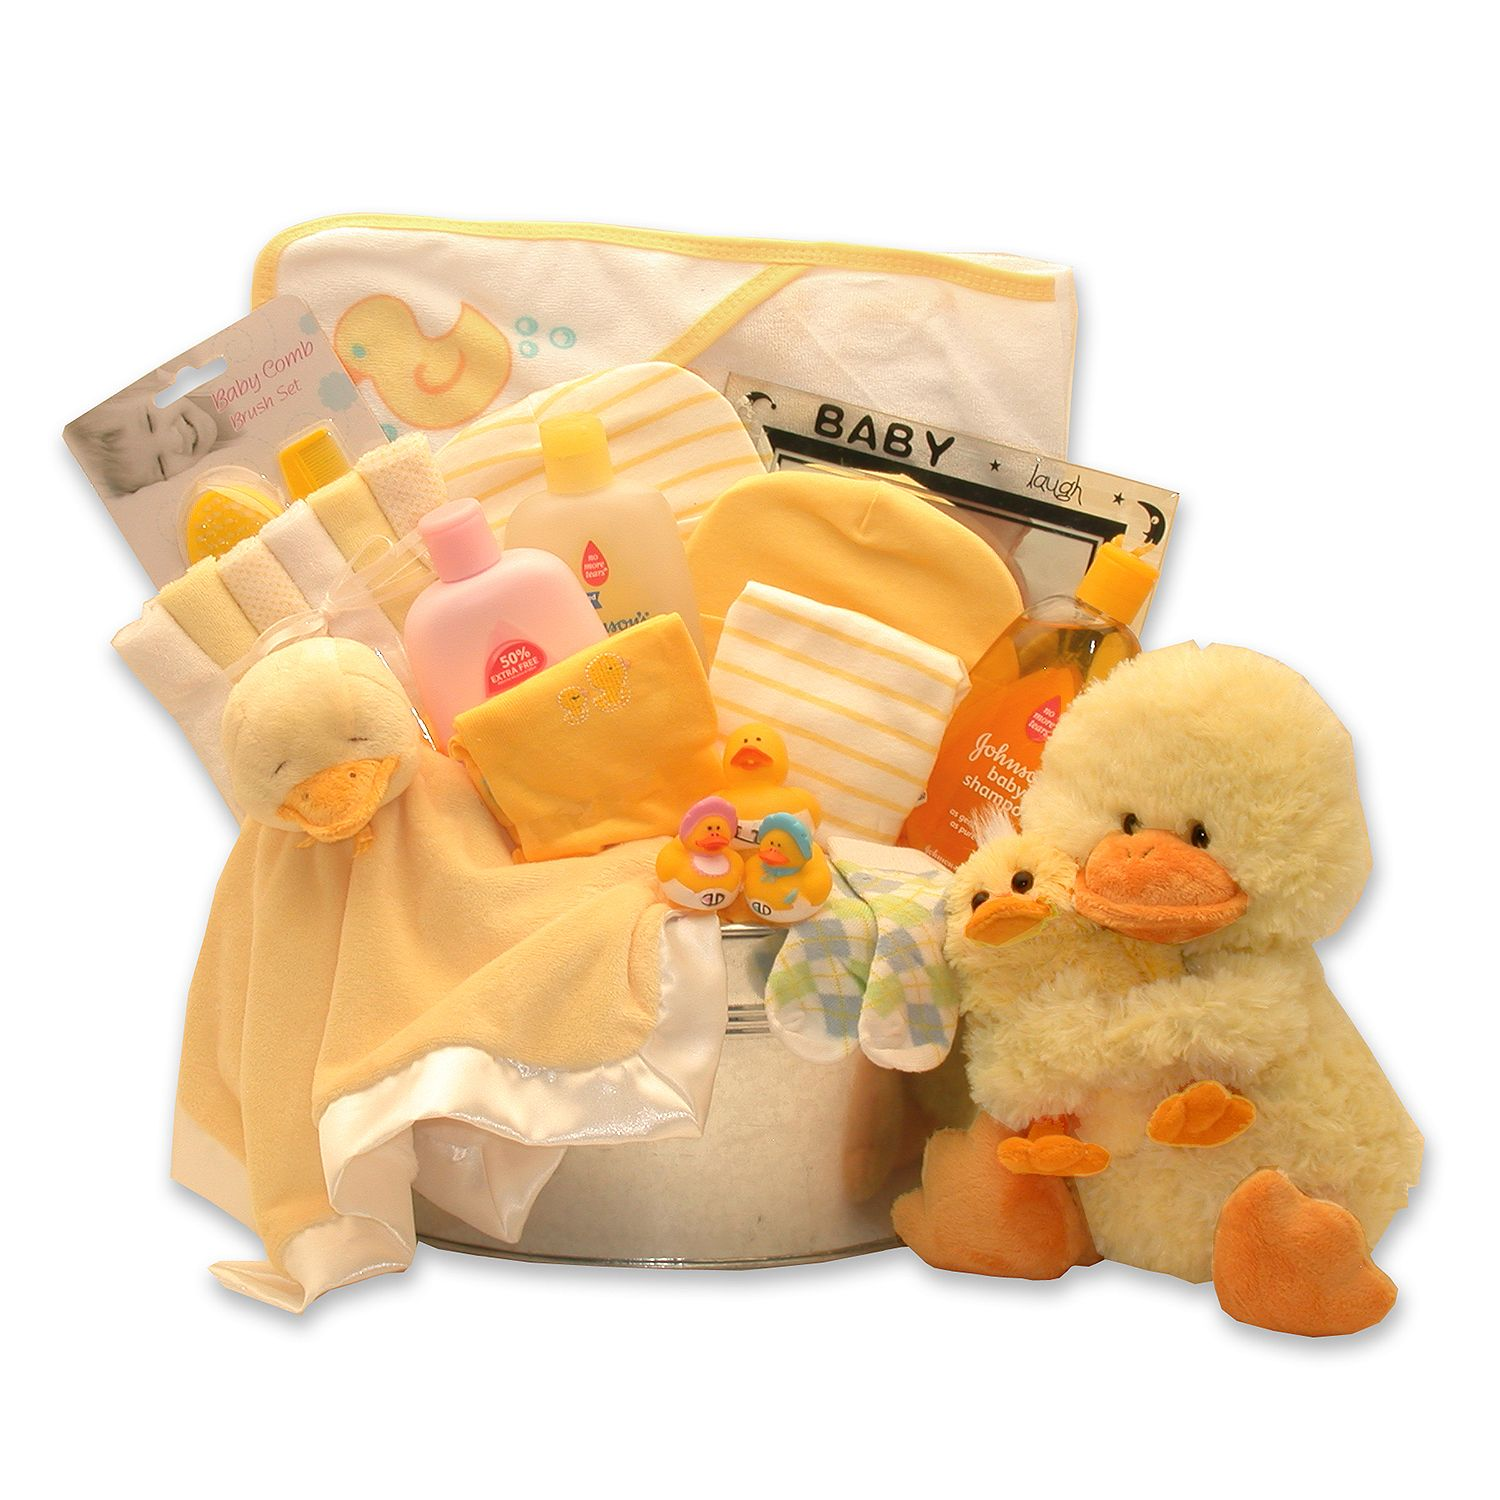 Bath Time Baby Deluxe Gift Tub by Bath Time